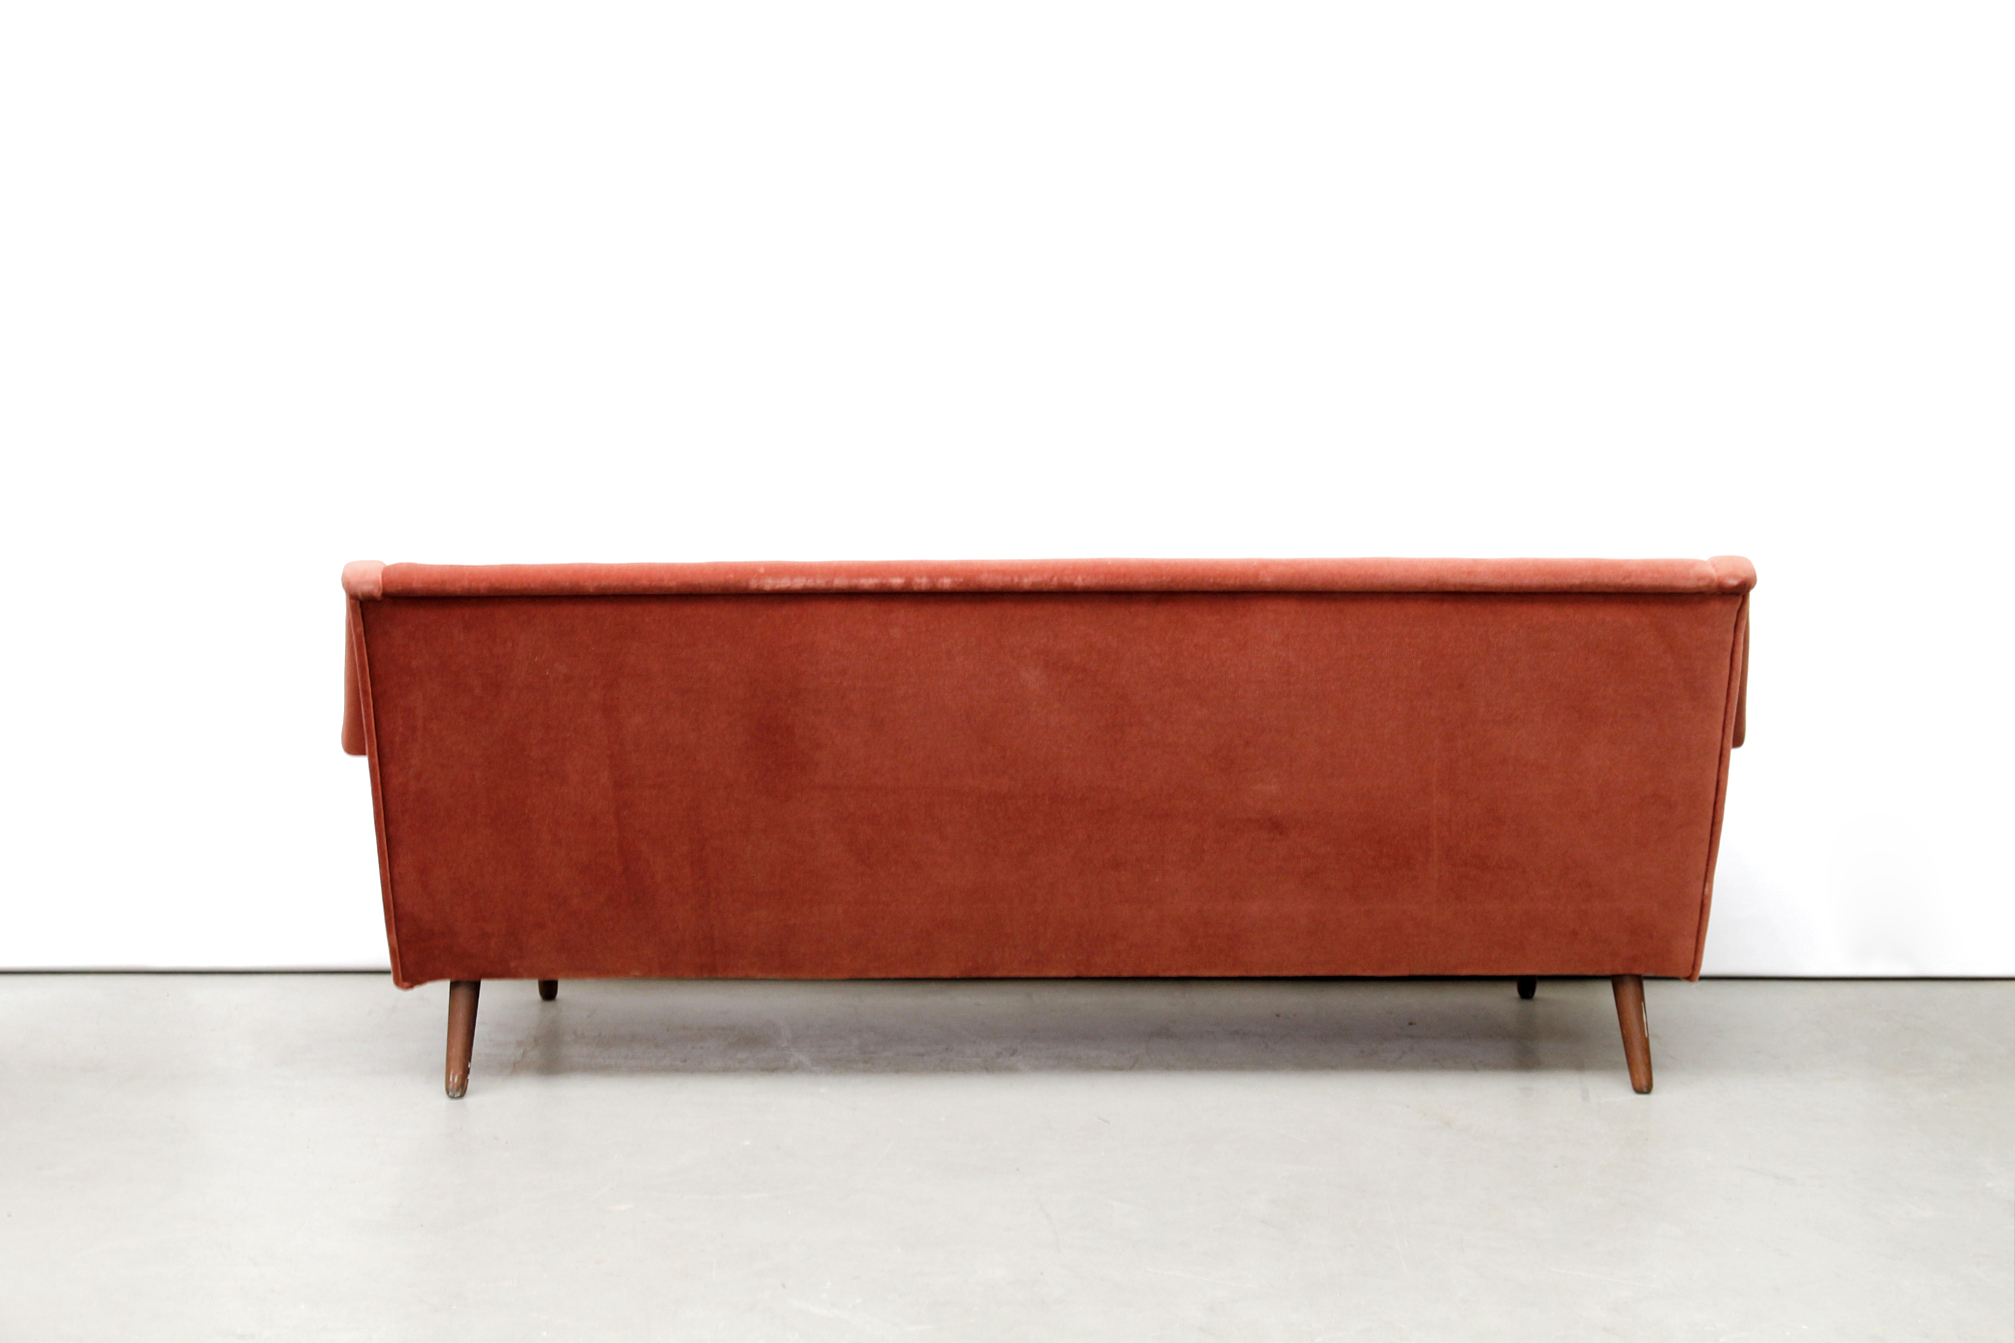 Bank Deens Design Vintage Oud Roze Deens Design Bank Danish Design Sofa